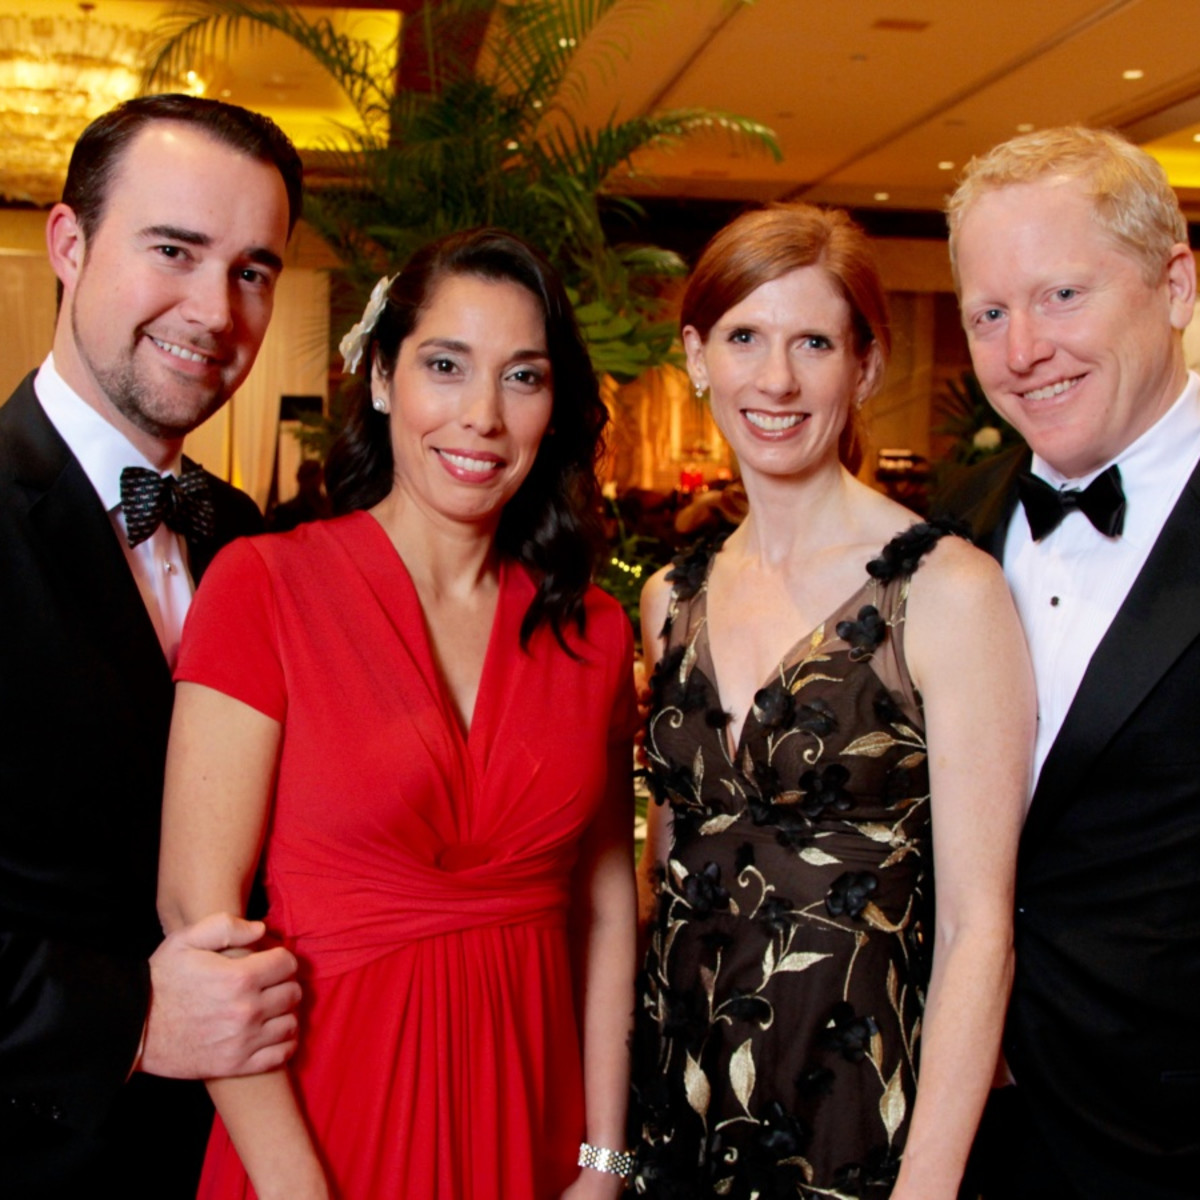 Houston, West University Park Lovers' Ball, February 2018, Shawn Cloonan, Wendy Cloonan, Elizabeth Love, Jason Love